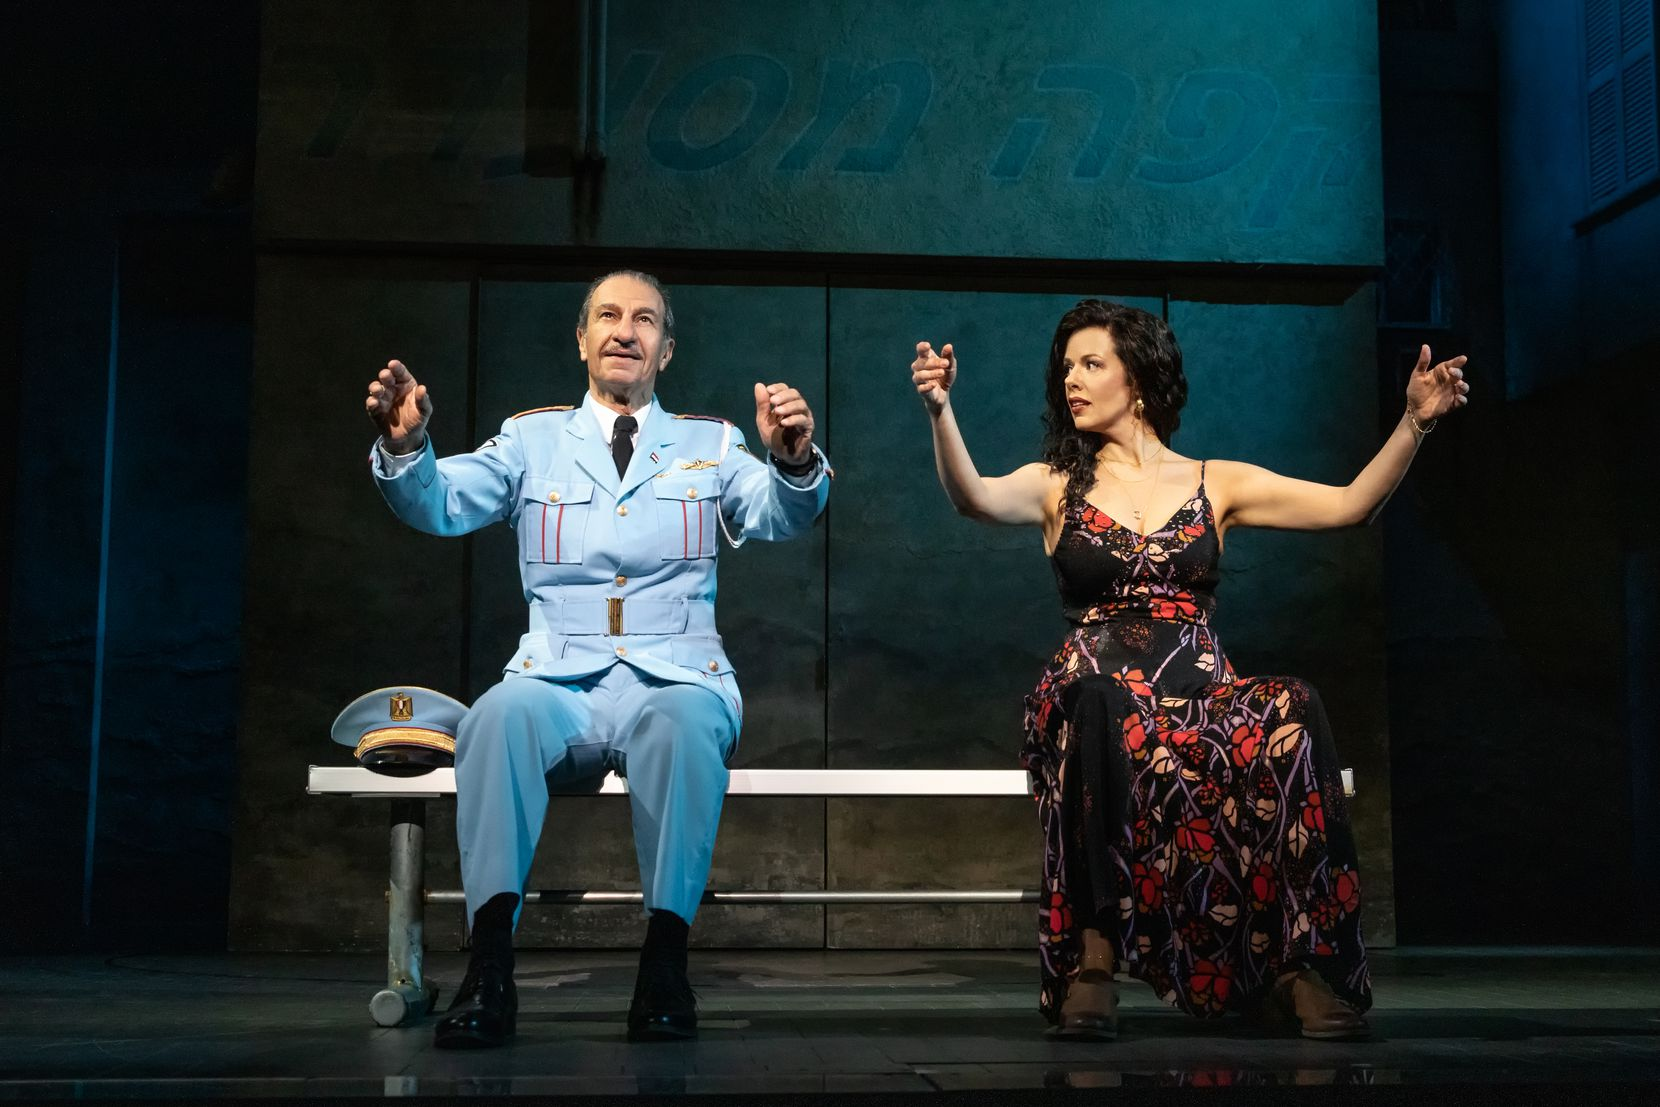 """Col. Tewfiq Zakaria (Sasson Gabay) and cafe owner Dina (Janet Dacal) hit it off in the Tony Award-winning musical """"The Band's Visit."""" In this scene, he shows her how he conducts. The North American touring production is at the Winspear Opera House, co-presented by Dallas Summer Musicals and the AT&T Performing Arts Center."""